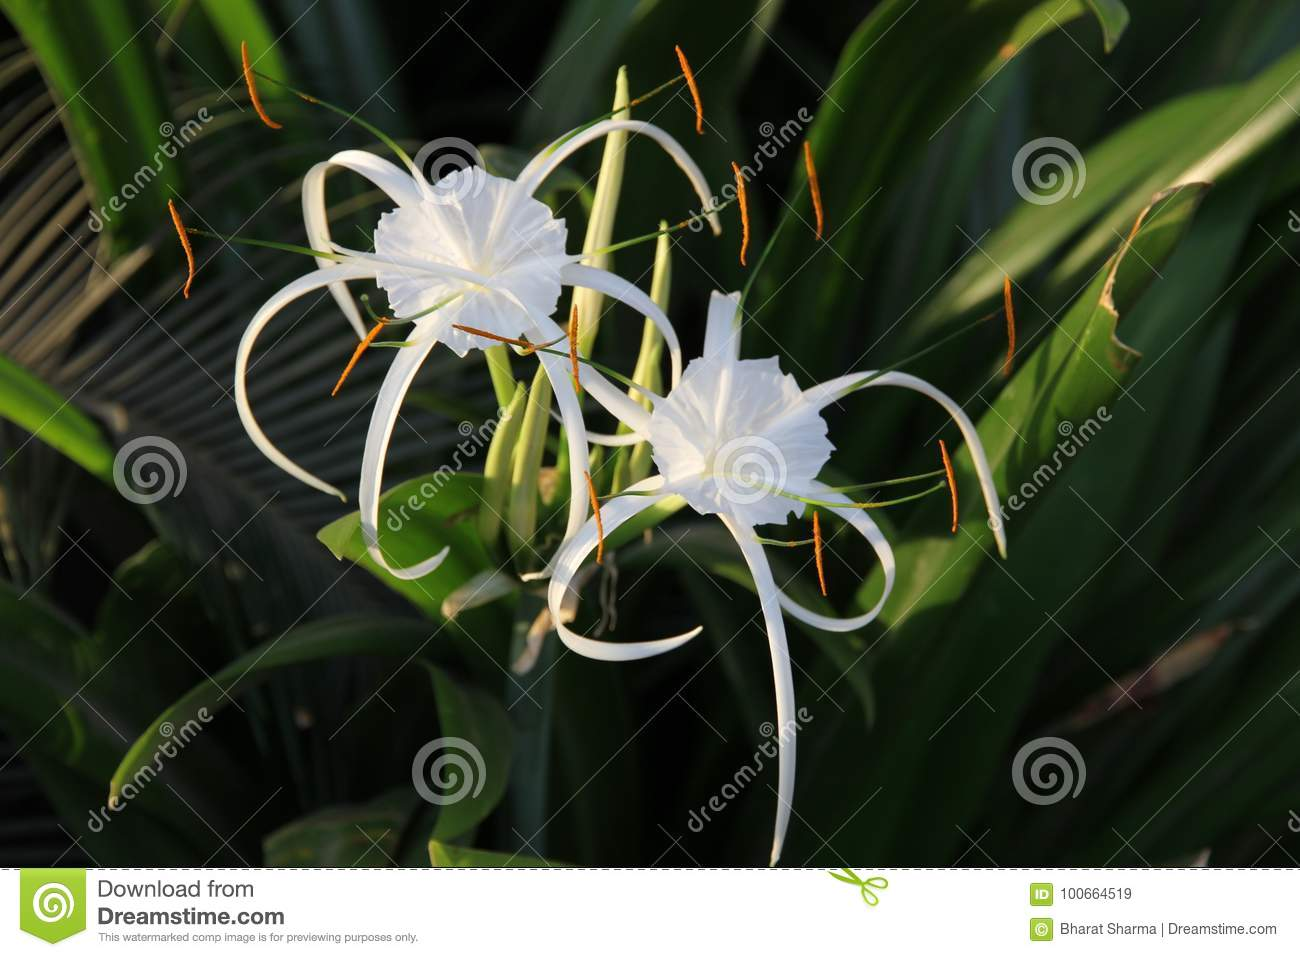 Couple of white lily like flowers with long petals stock image couple of white lily like flowers with long petals izmirmasajfo